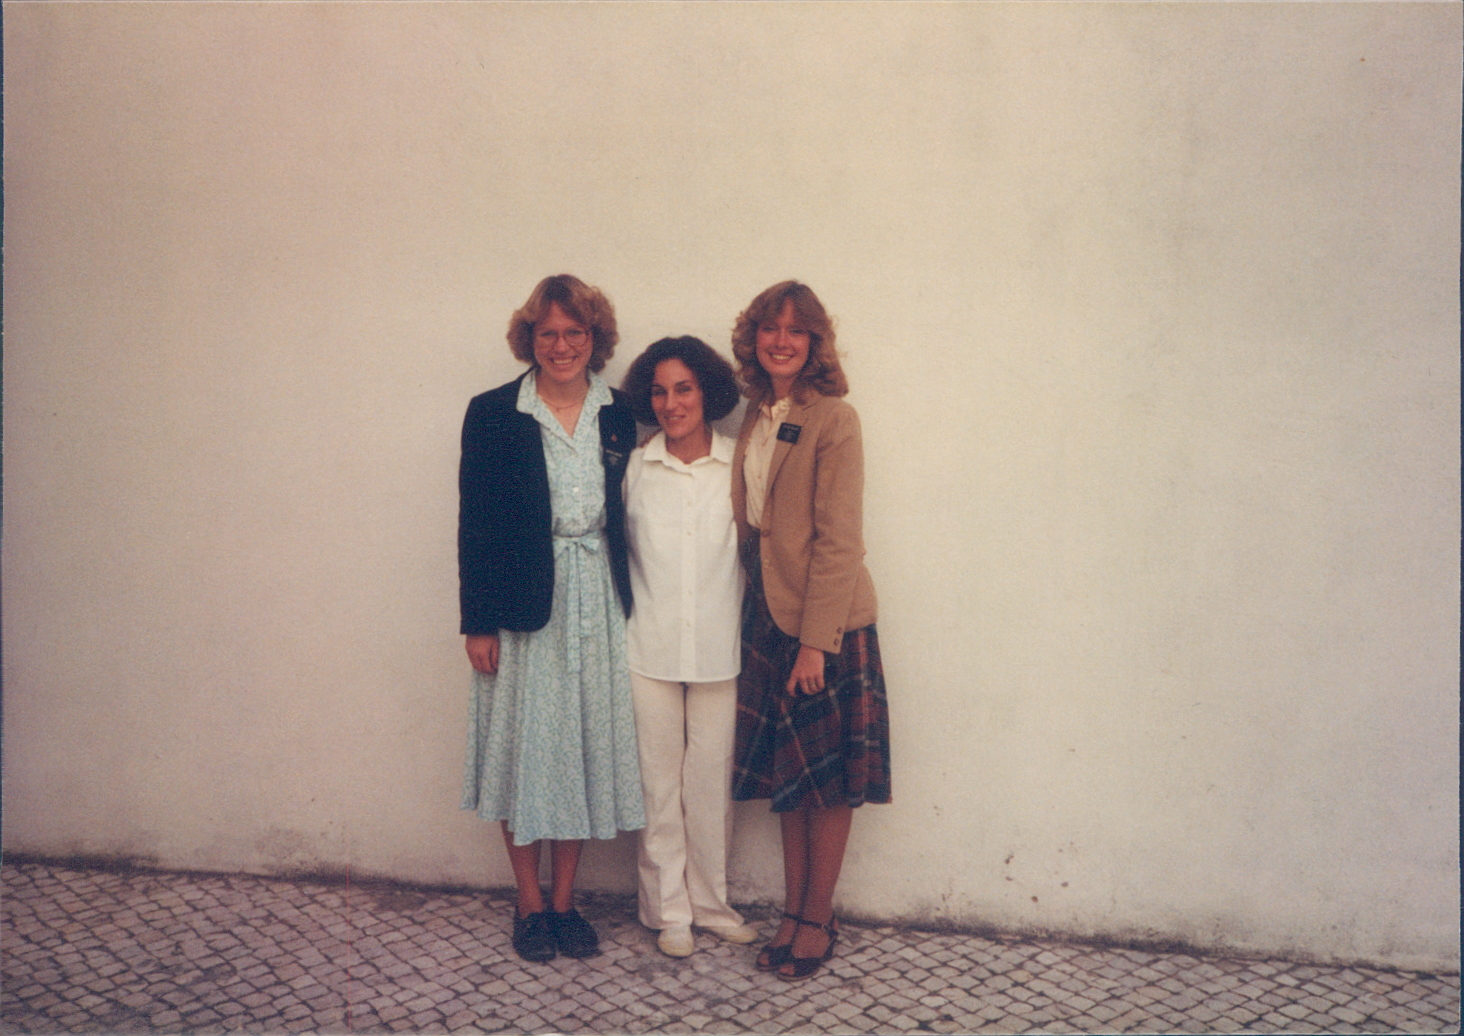 Sister Bonnie H. Cordon, right, served in the Portugal Lisbon Mission from 1982-1984.